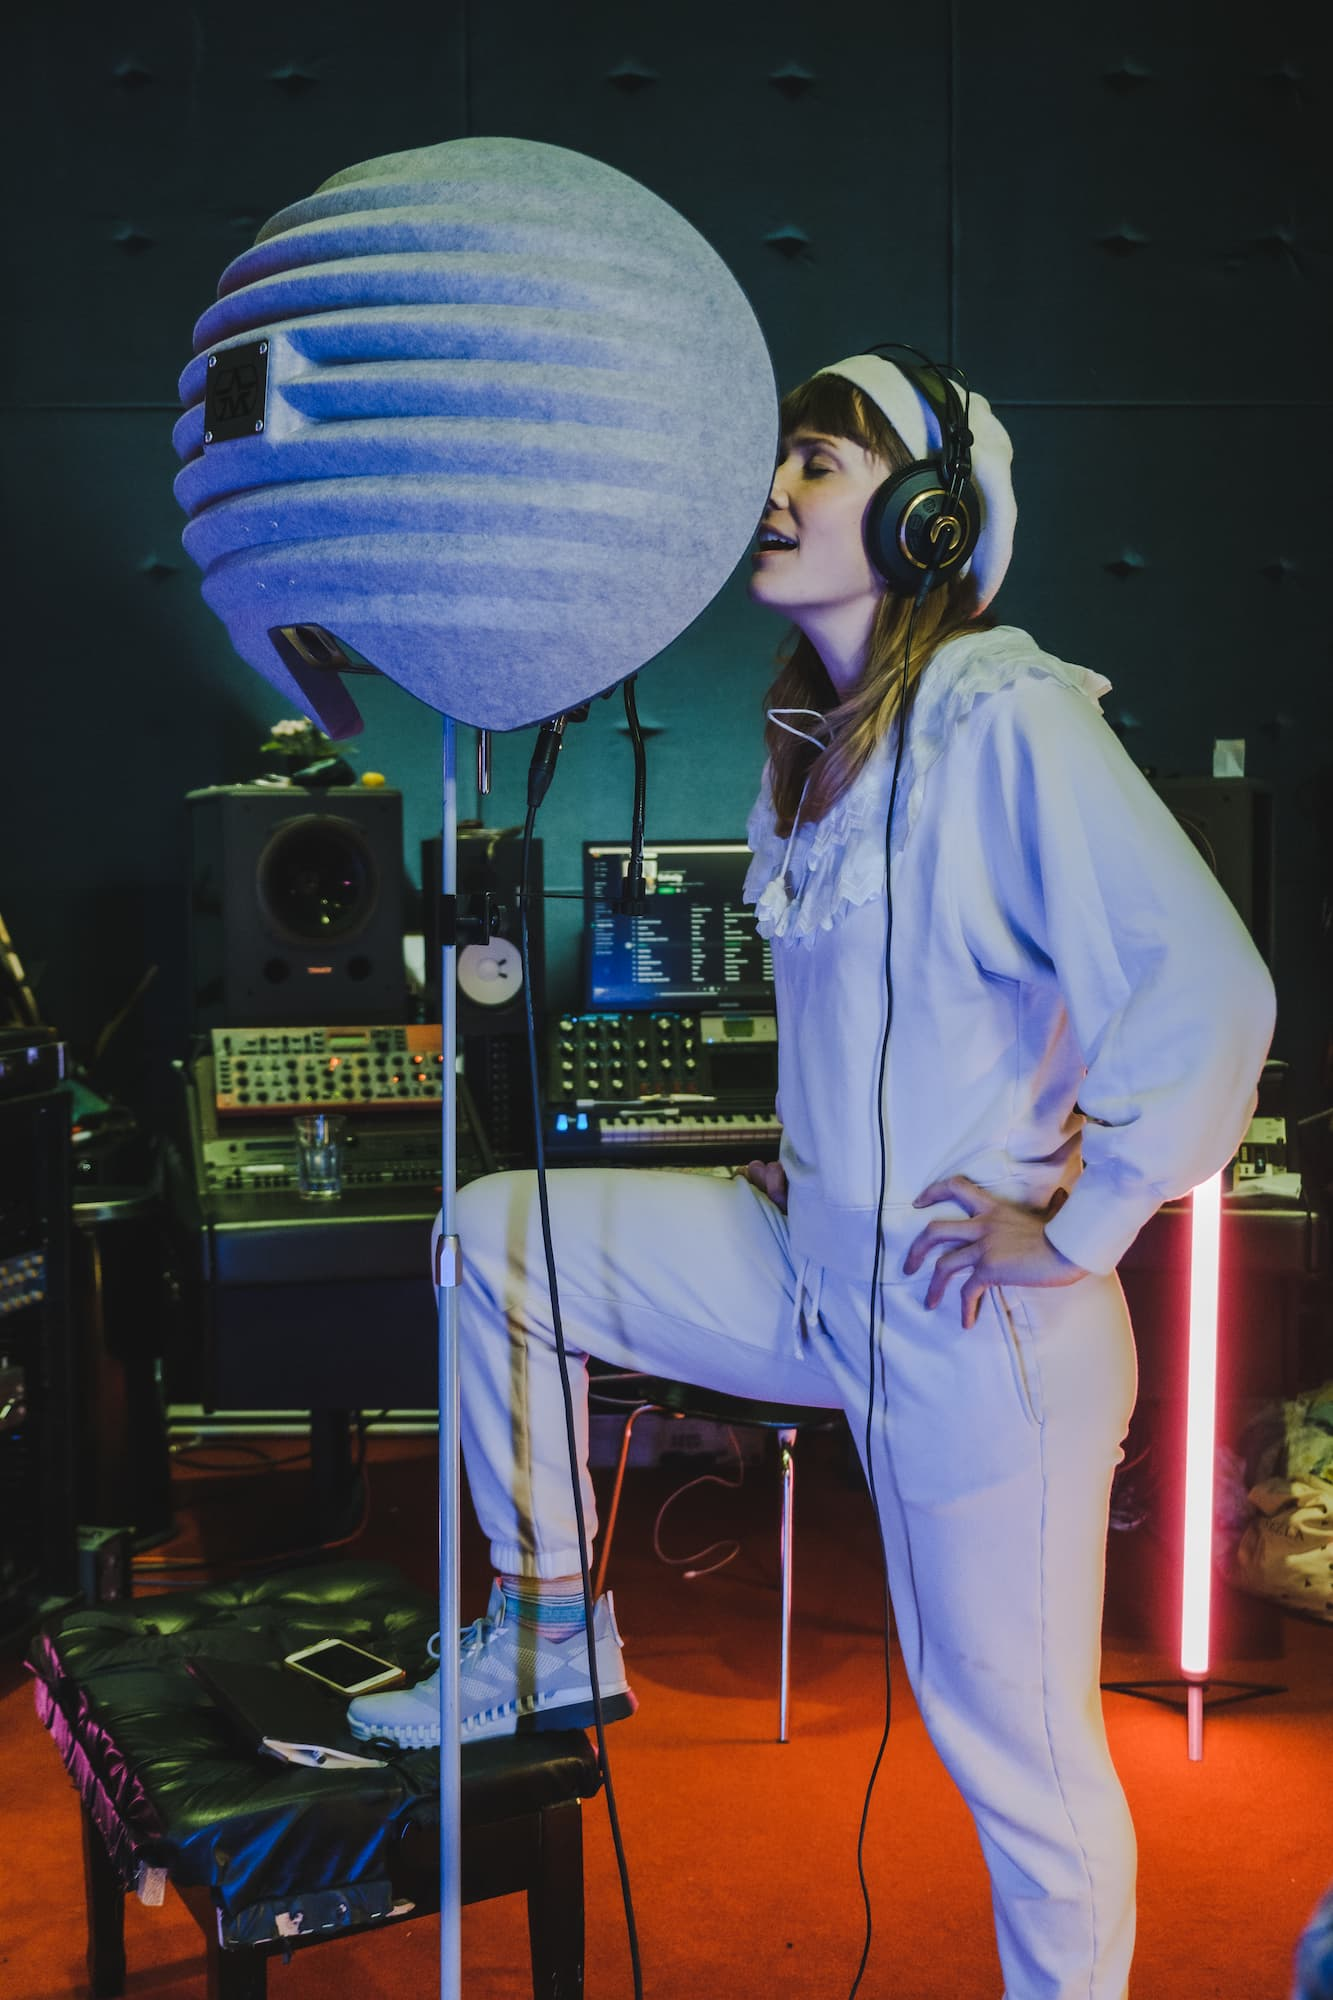 Oh Land singing into a microphone in her record studio.